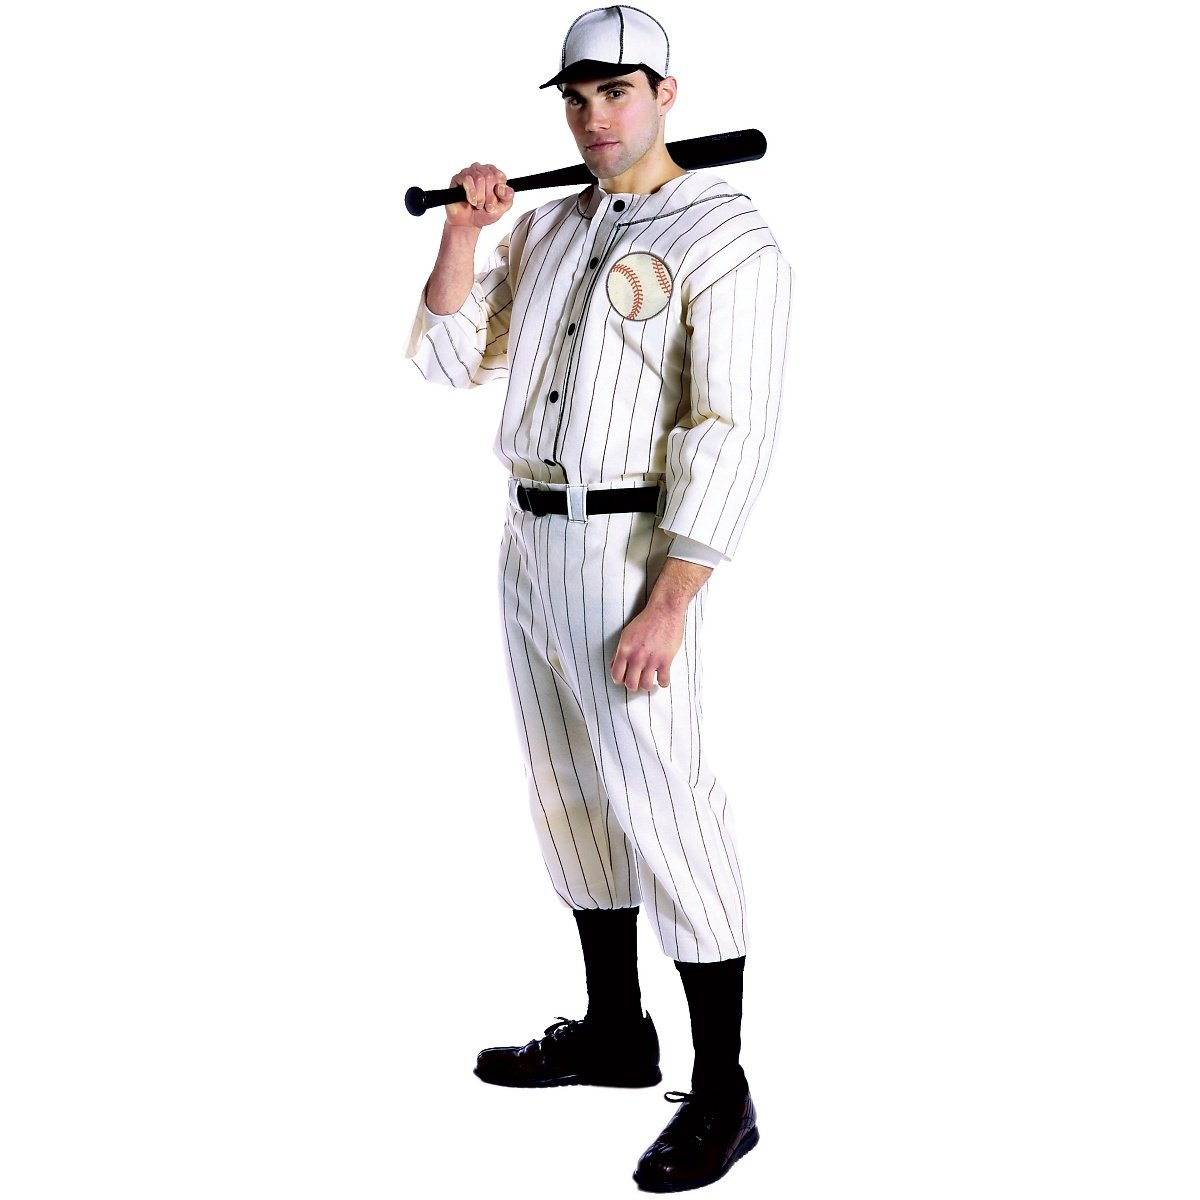 50s Costumes | 50s Halloween Costumes Rasta Imposta Old TYME Baseball Player Adult Costume- $38.12 AT vintagedancer.com